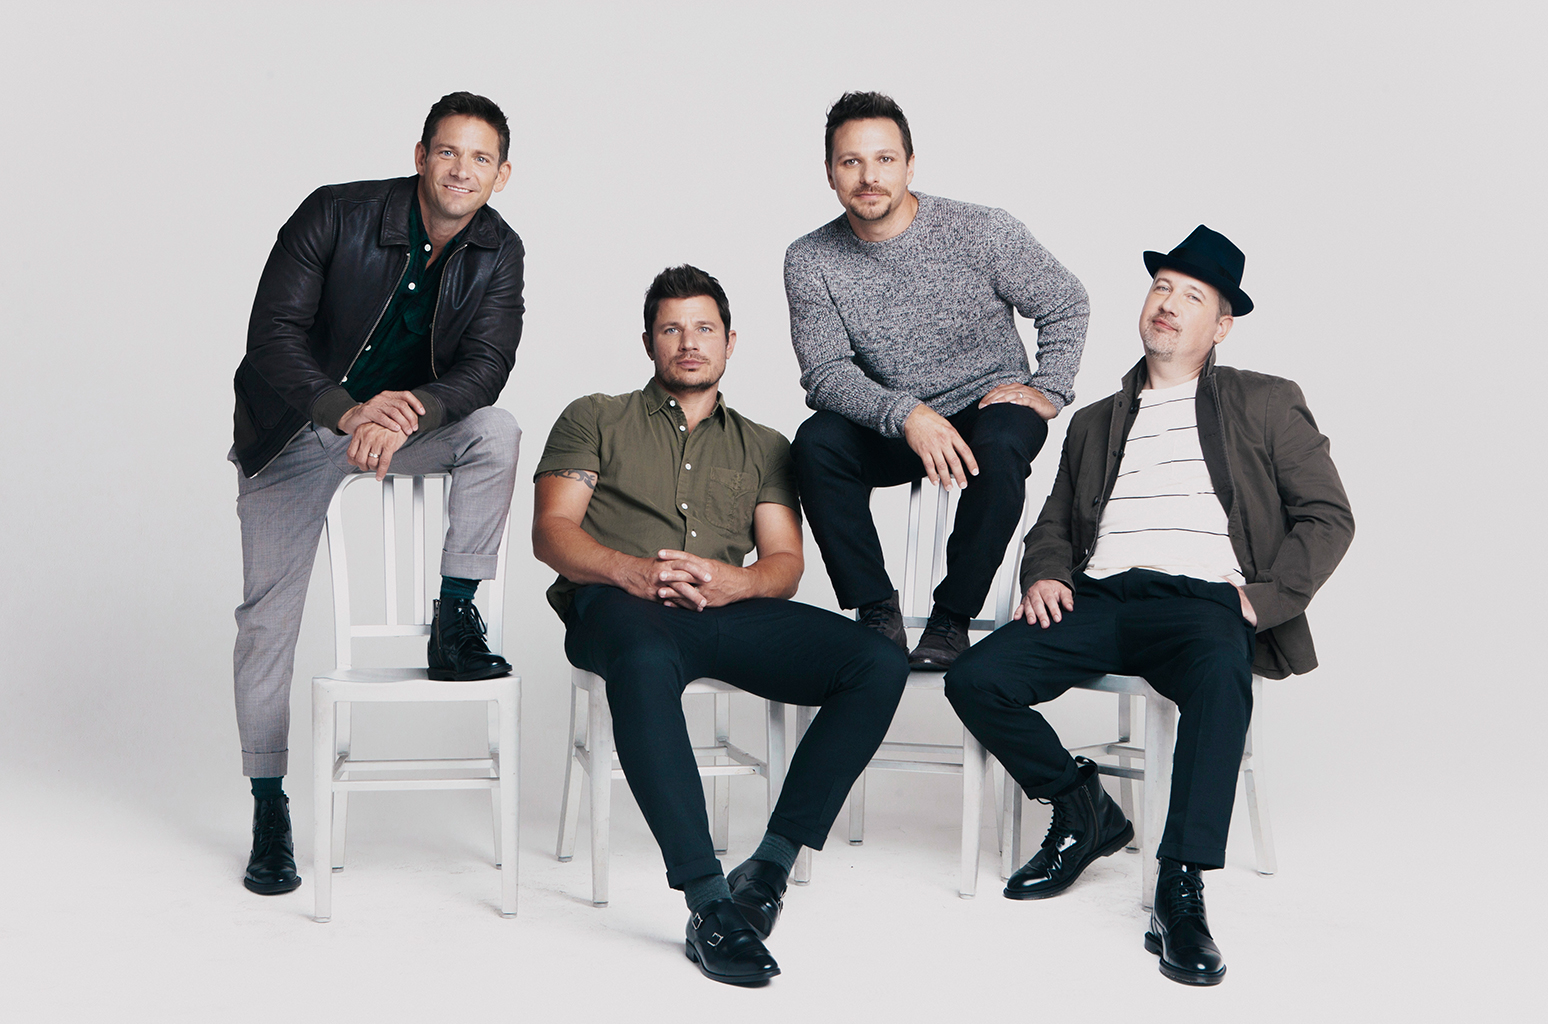 98-Degrees-press-photo-by-Elias-Tahan-2017-billboard-1548